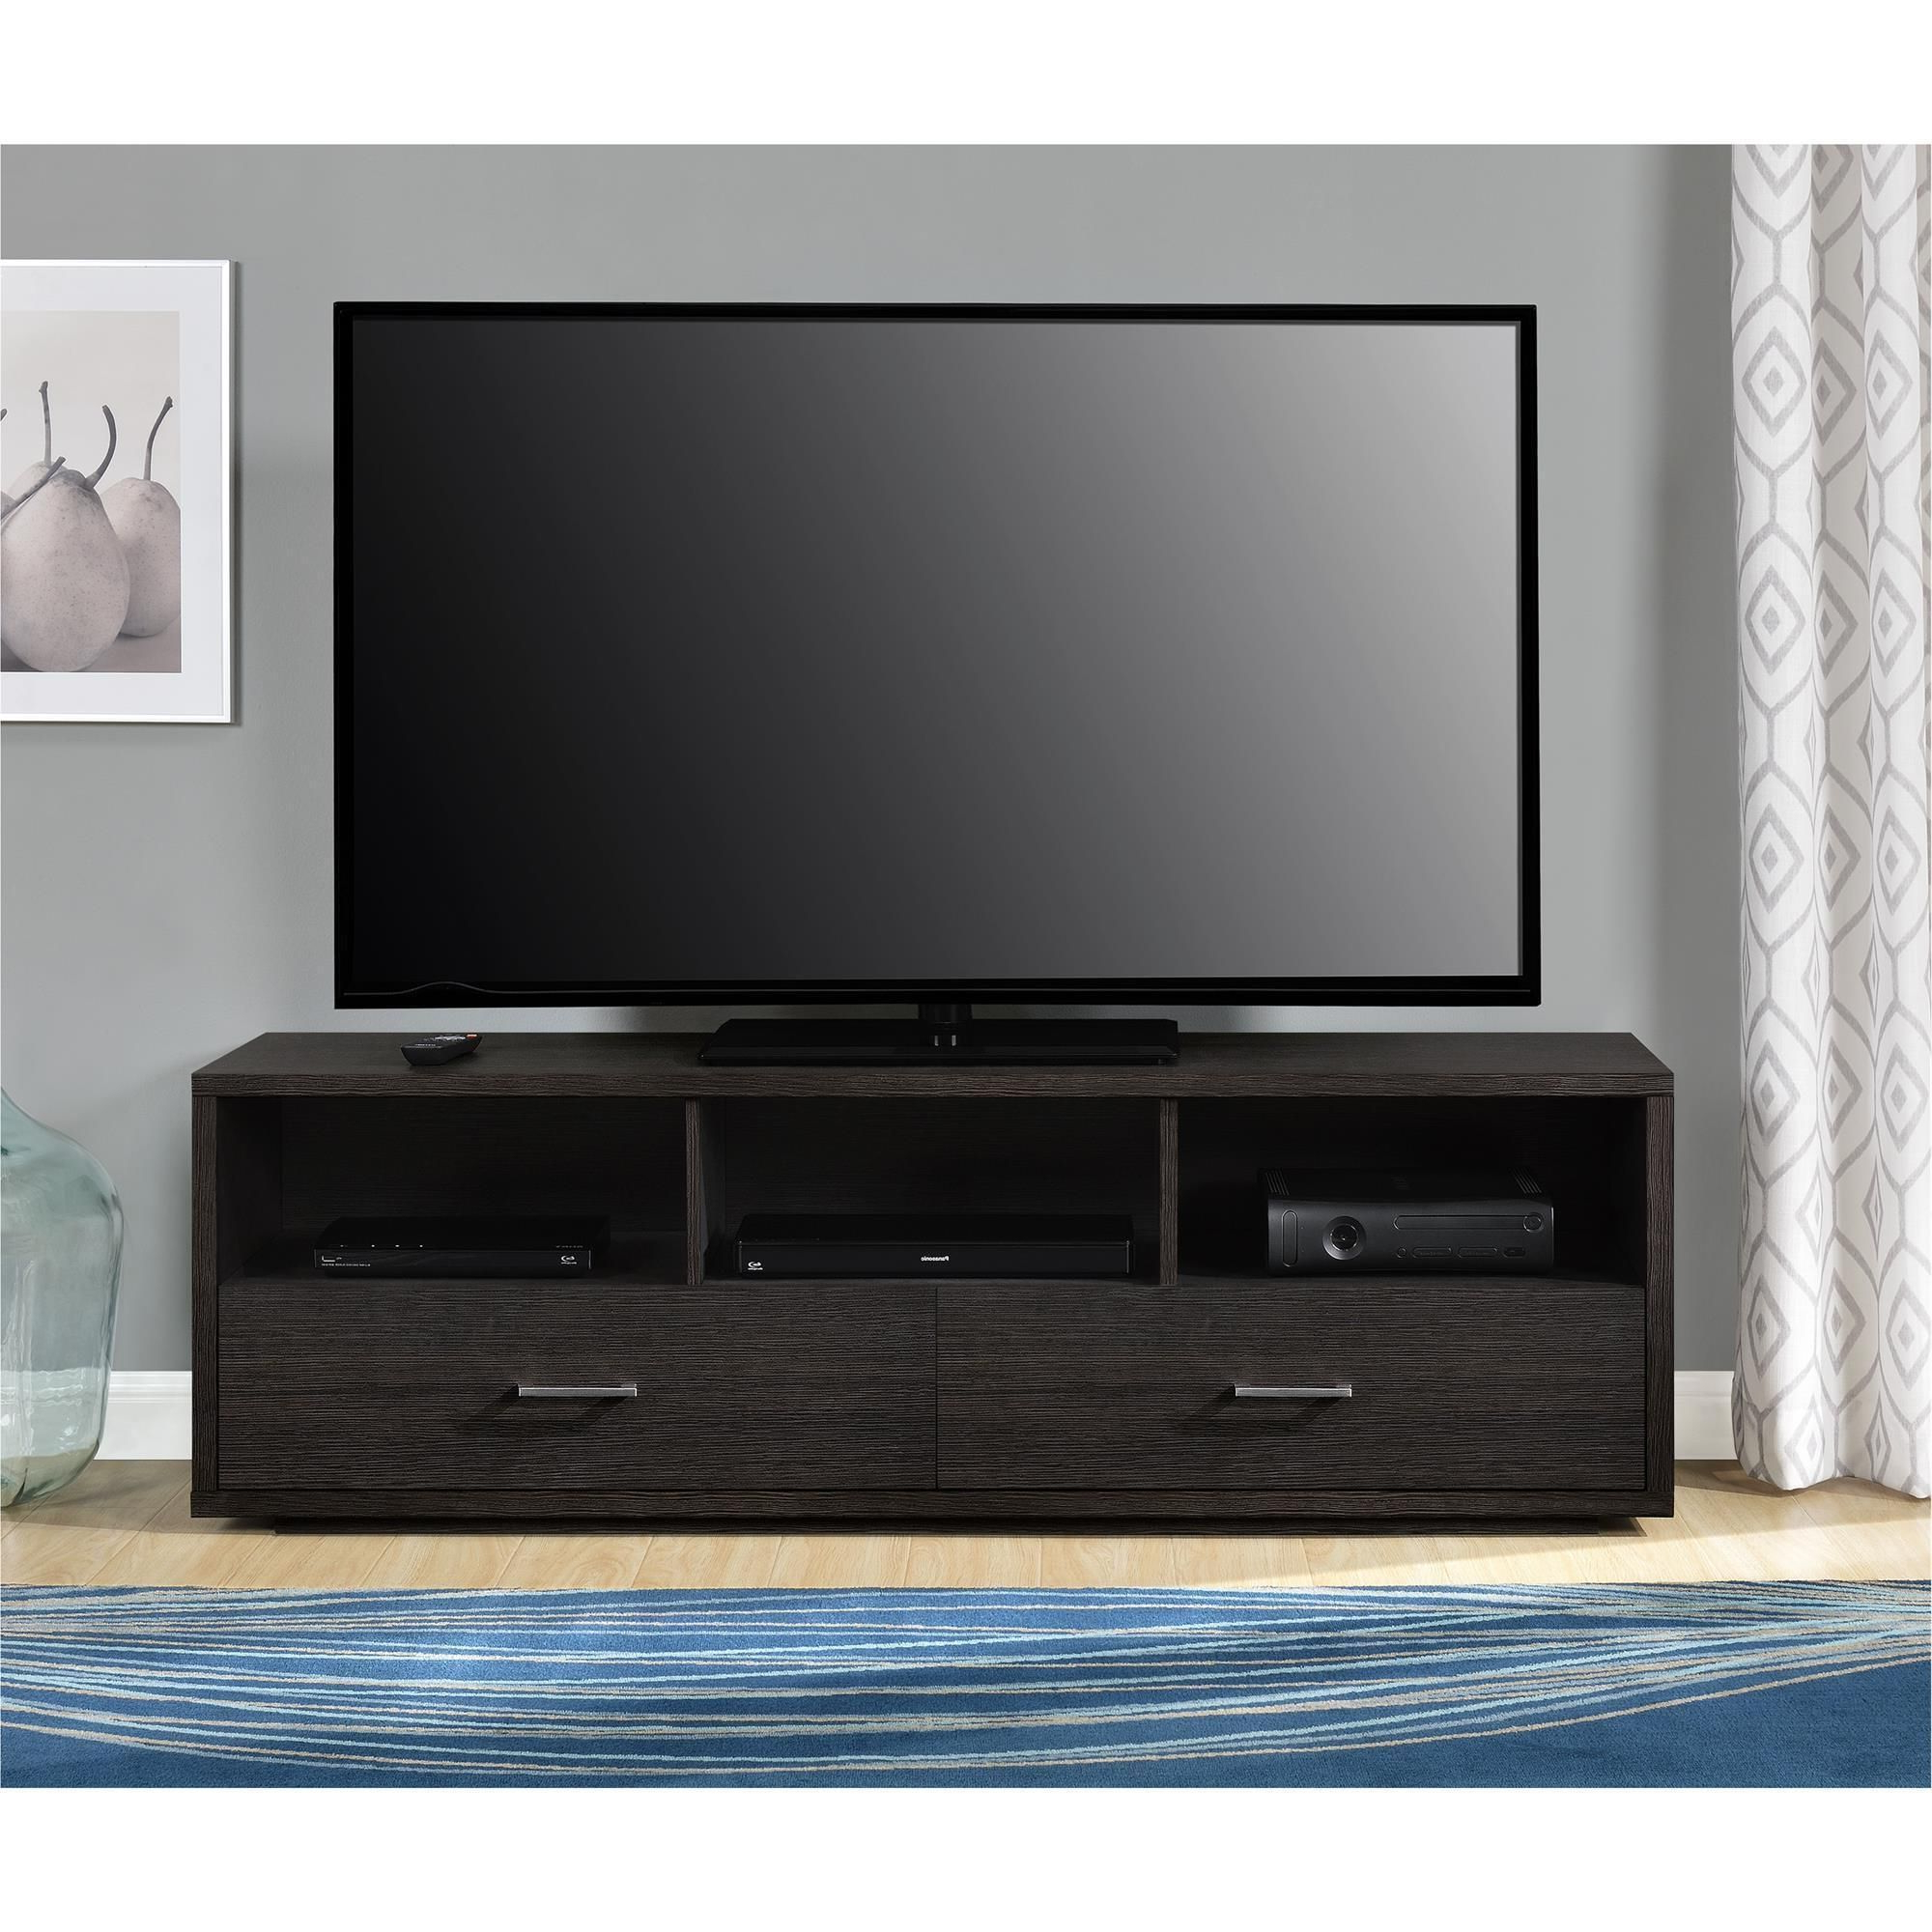 Preferred The Altra Clark 70 Inch Tv Stand Helps To Make A Statement In Your In Tv Stands For 70 Flat Screen (View 19 of 20)